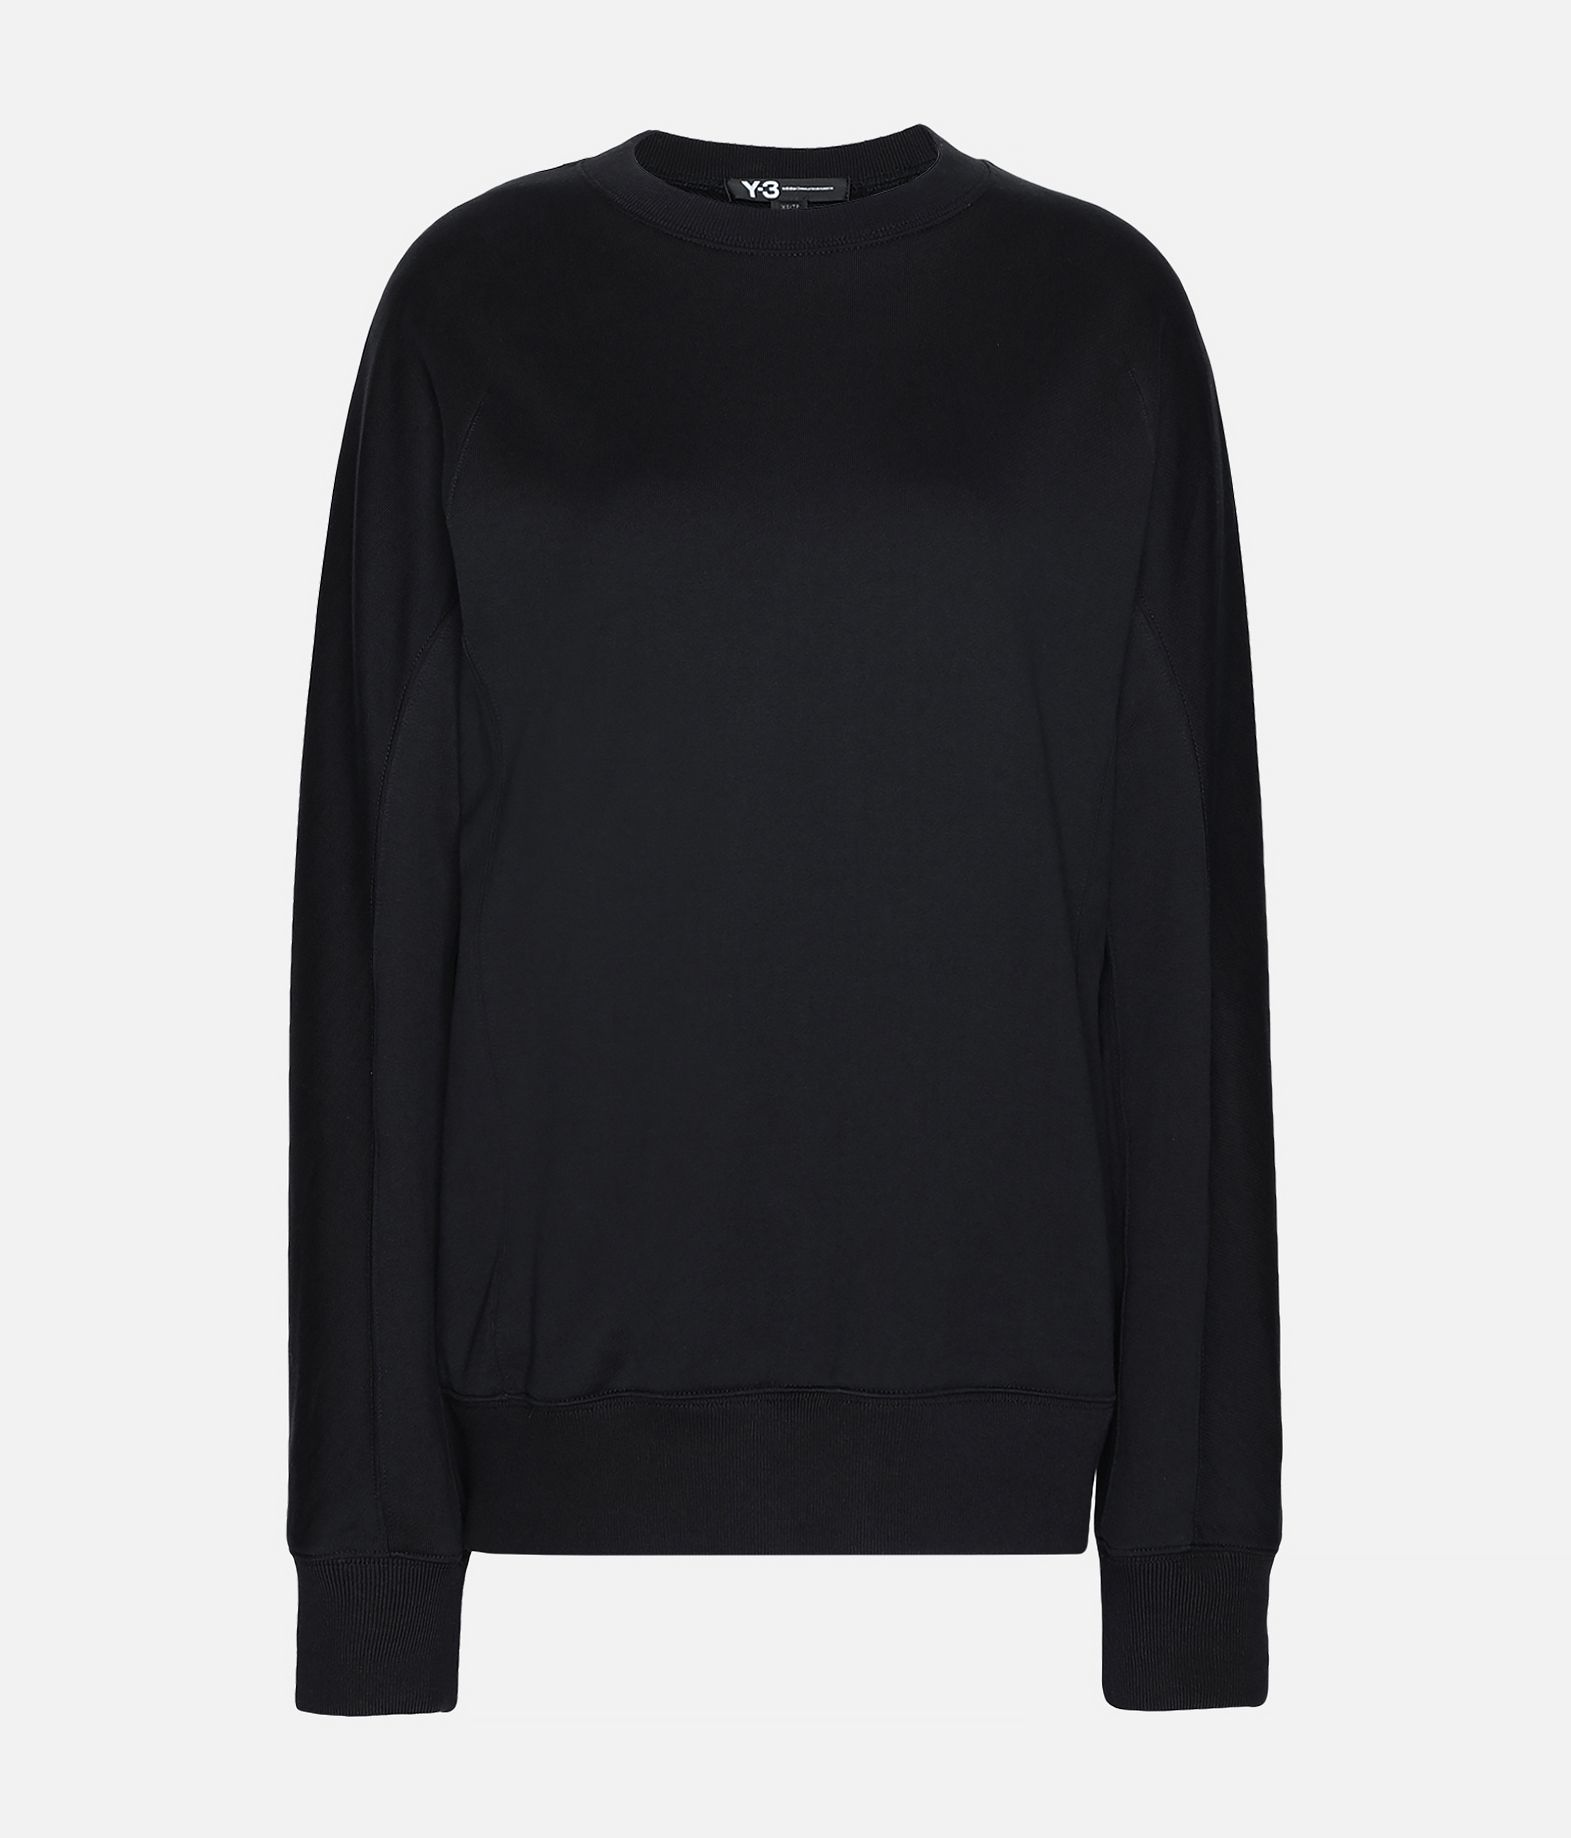 Y-3 Y-3 Classic Sweater Sweatshirt Woman f